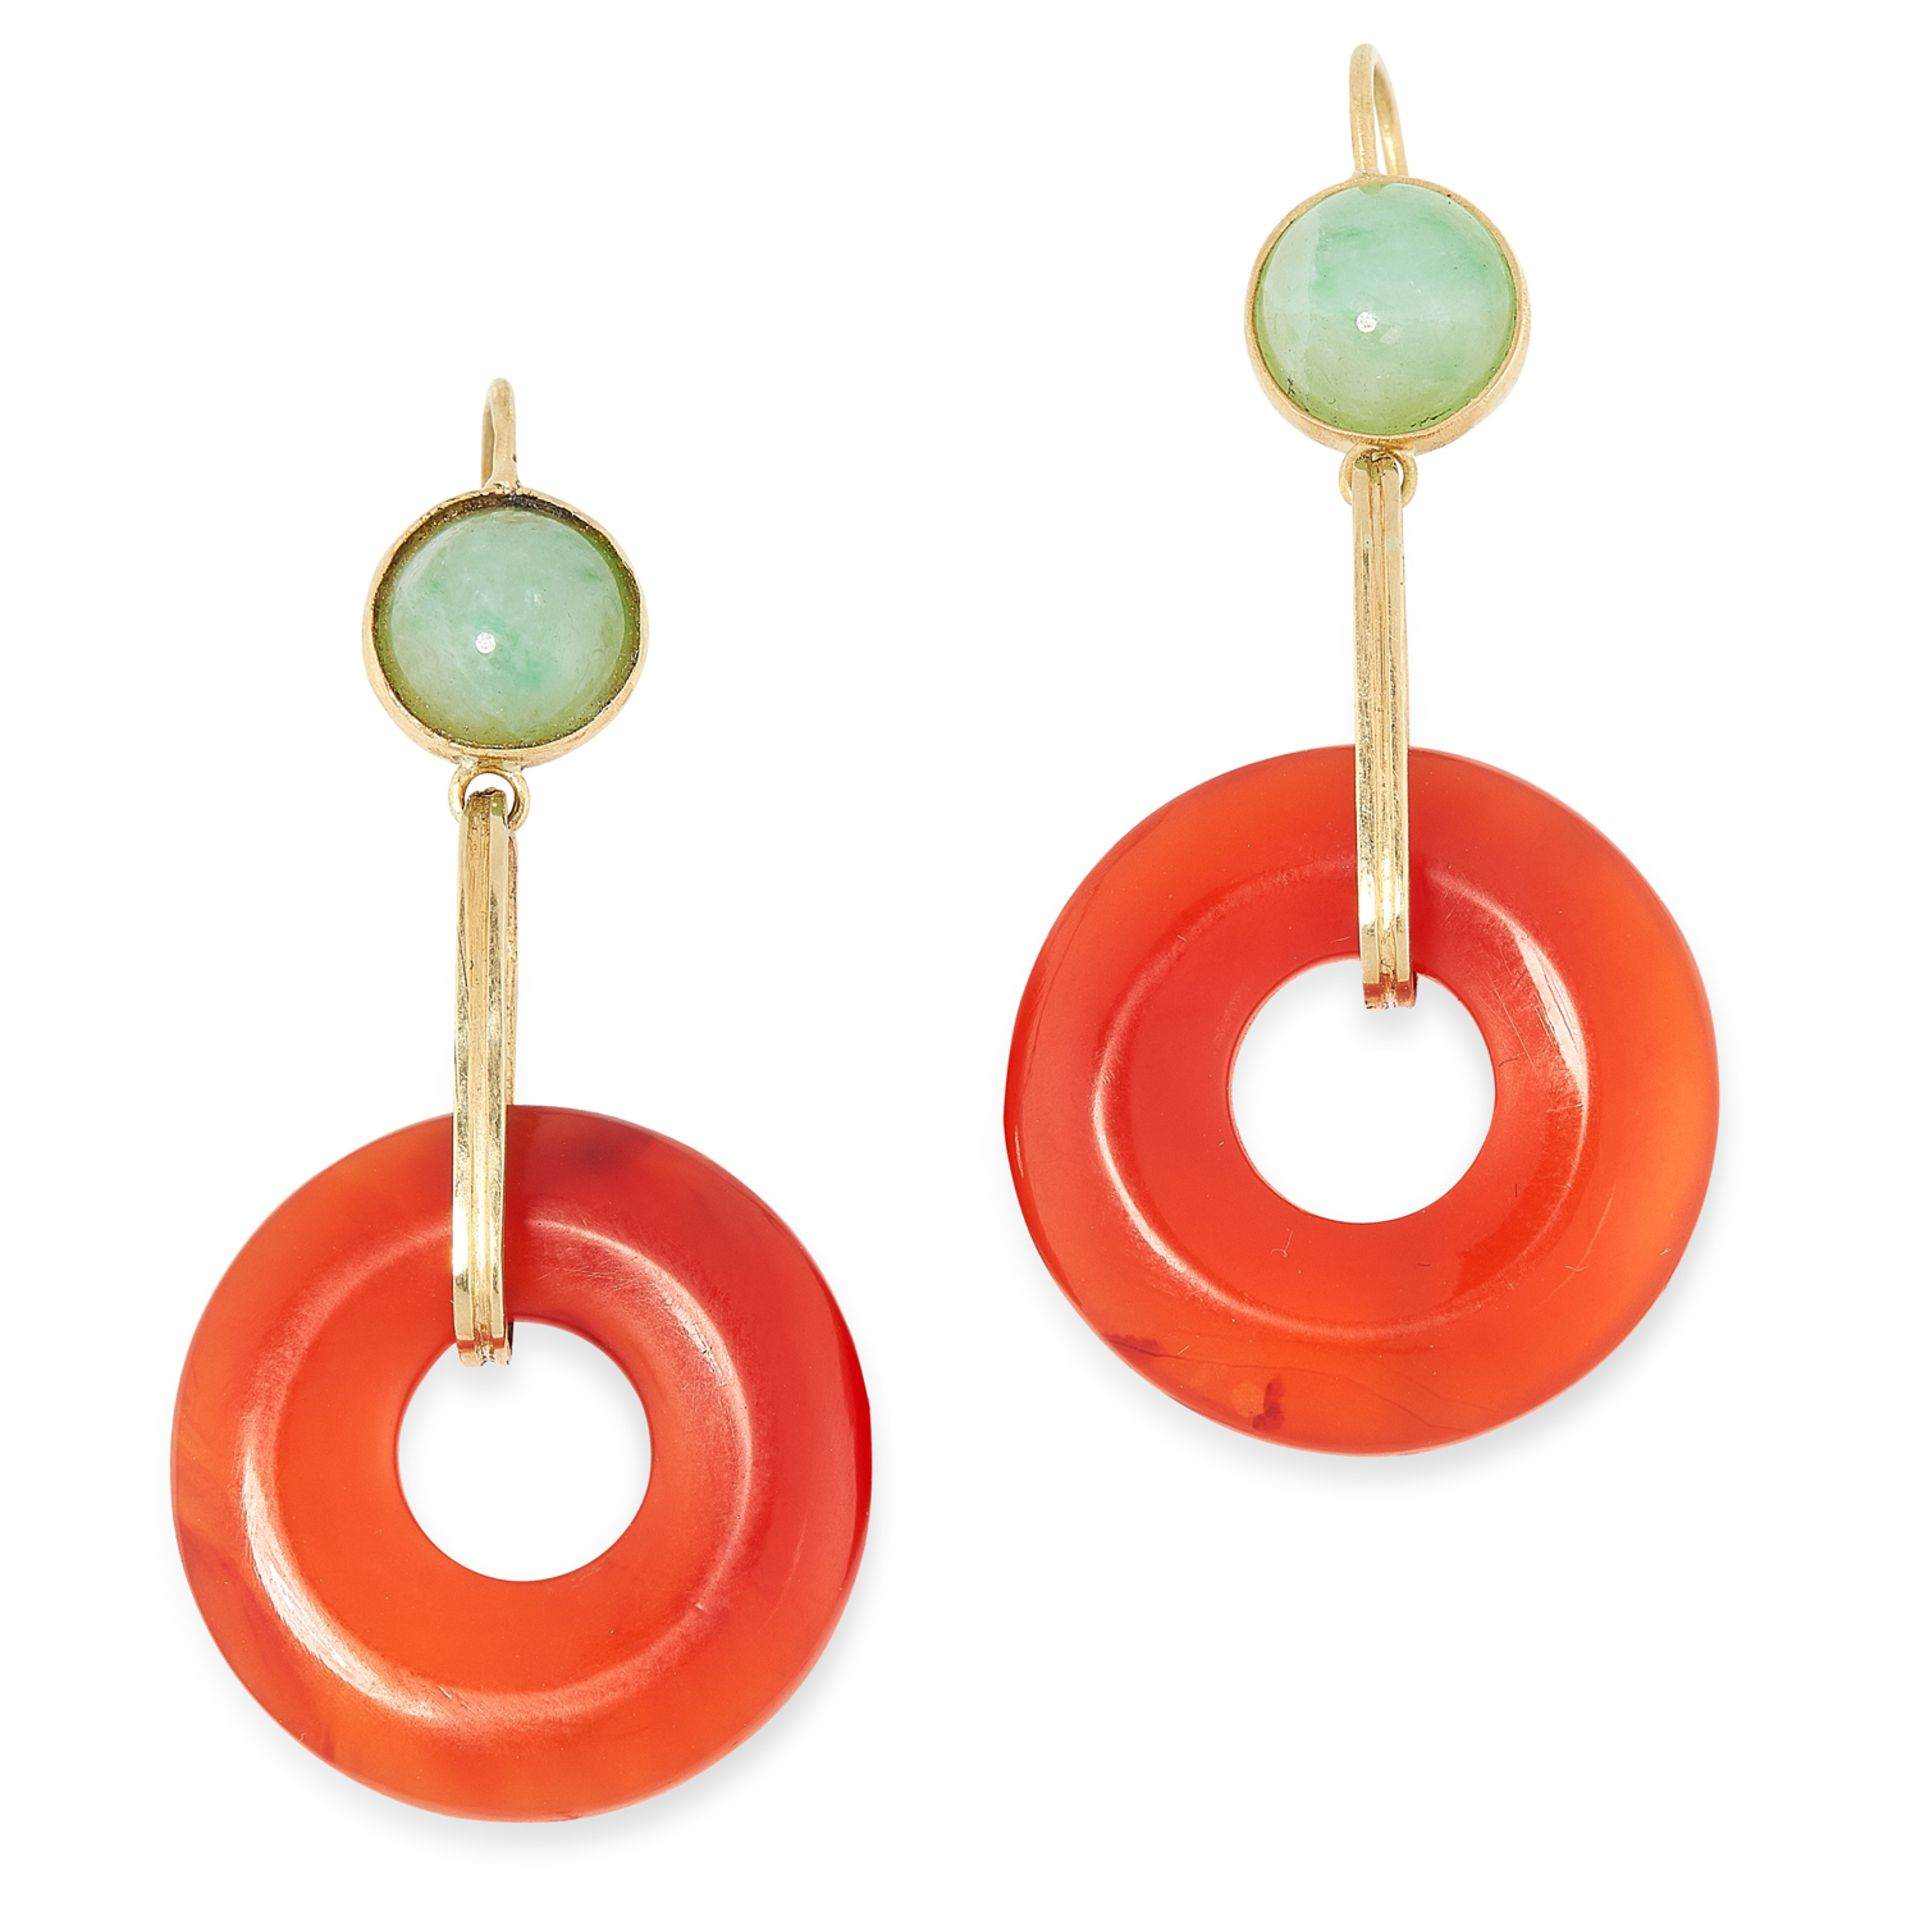 A PAIR OF CARNELIAN AND JADE DROP EARRINGS in 18ct yellow gold, each set with a polished carnelian